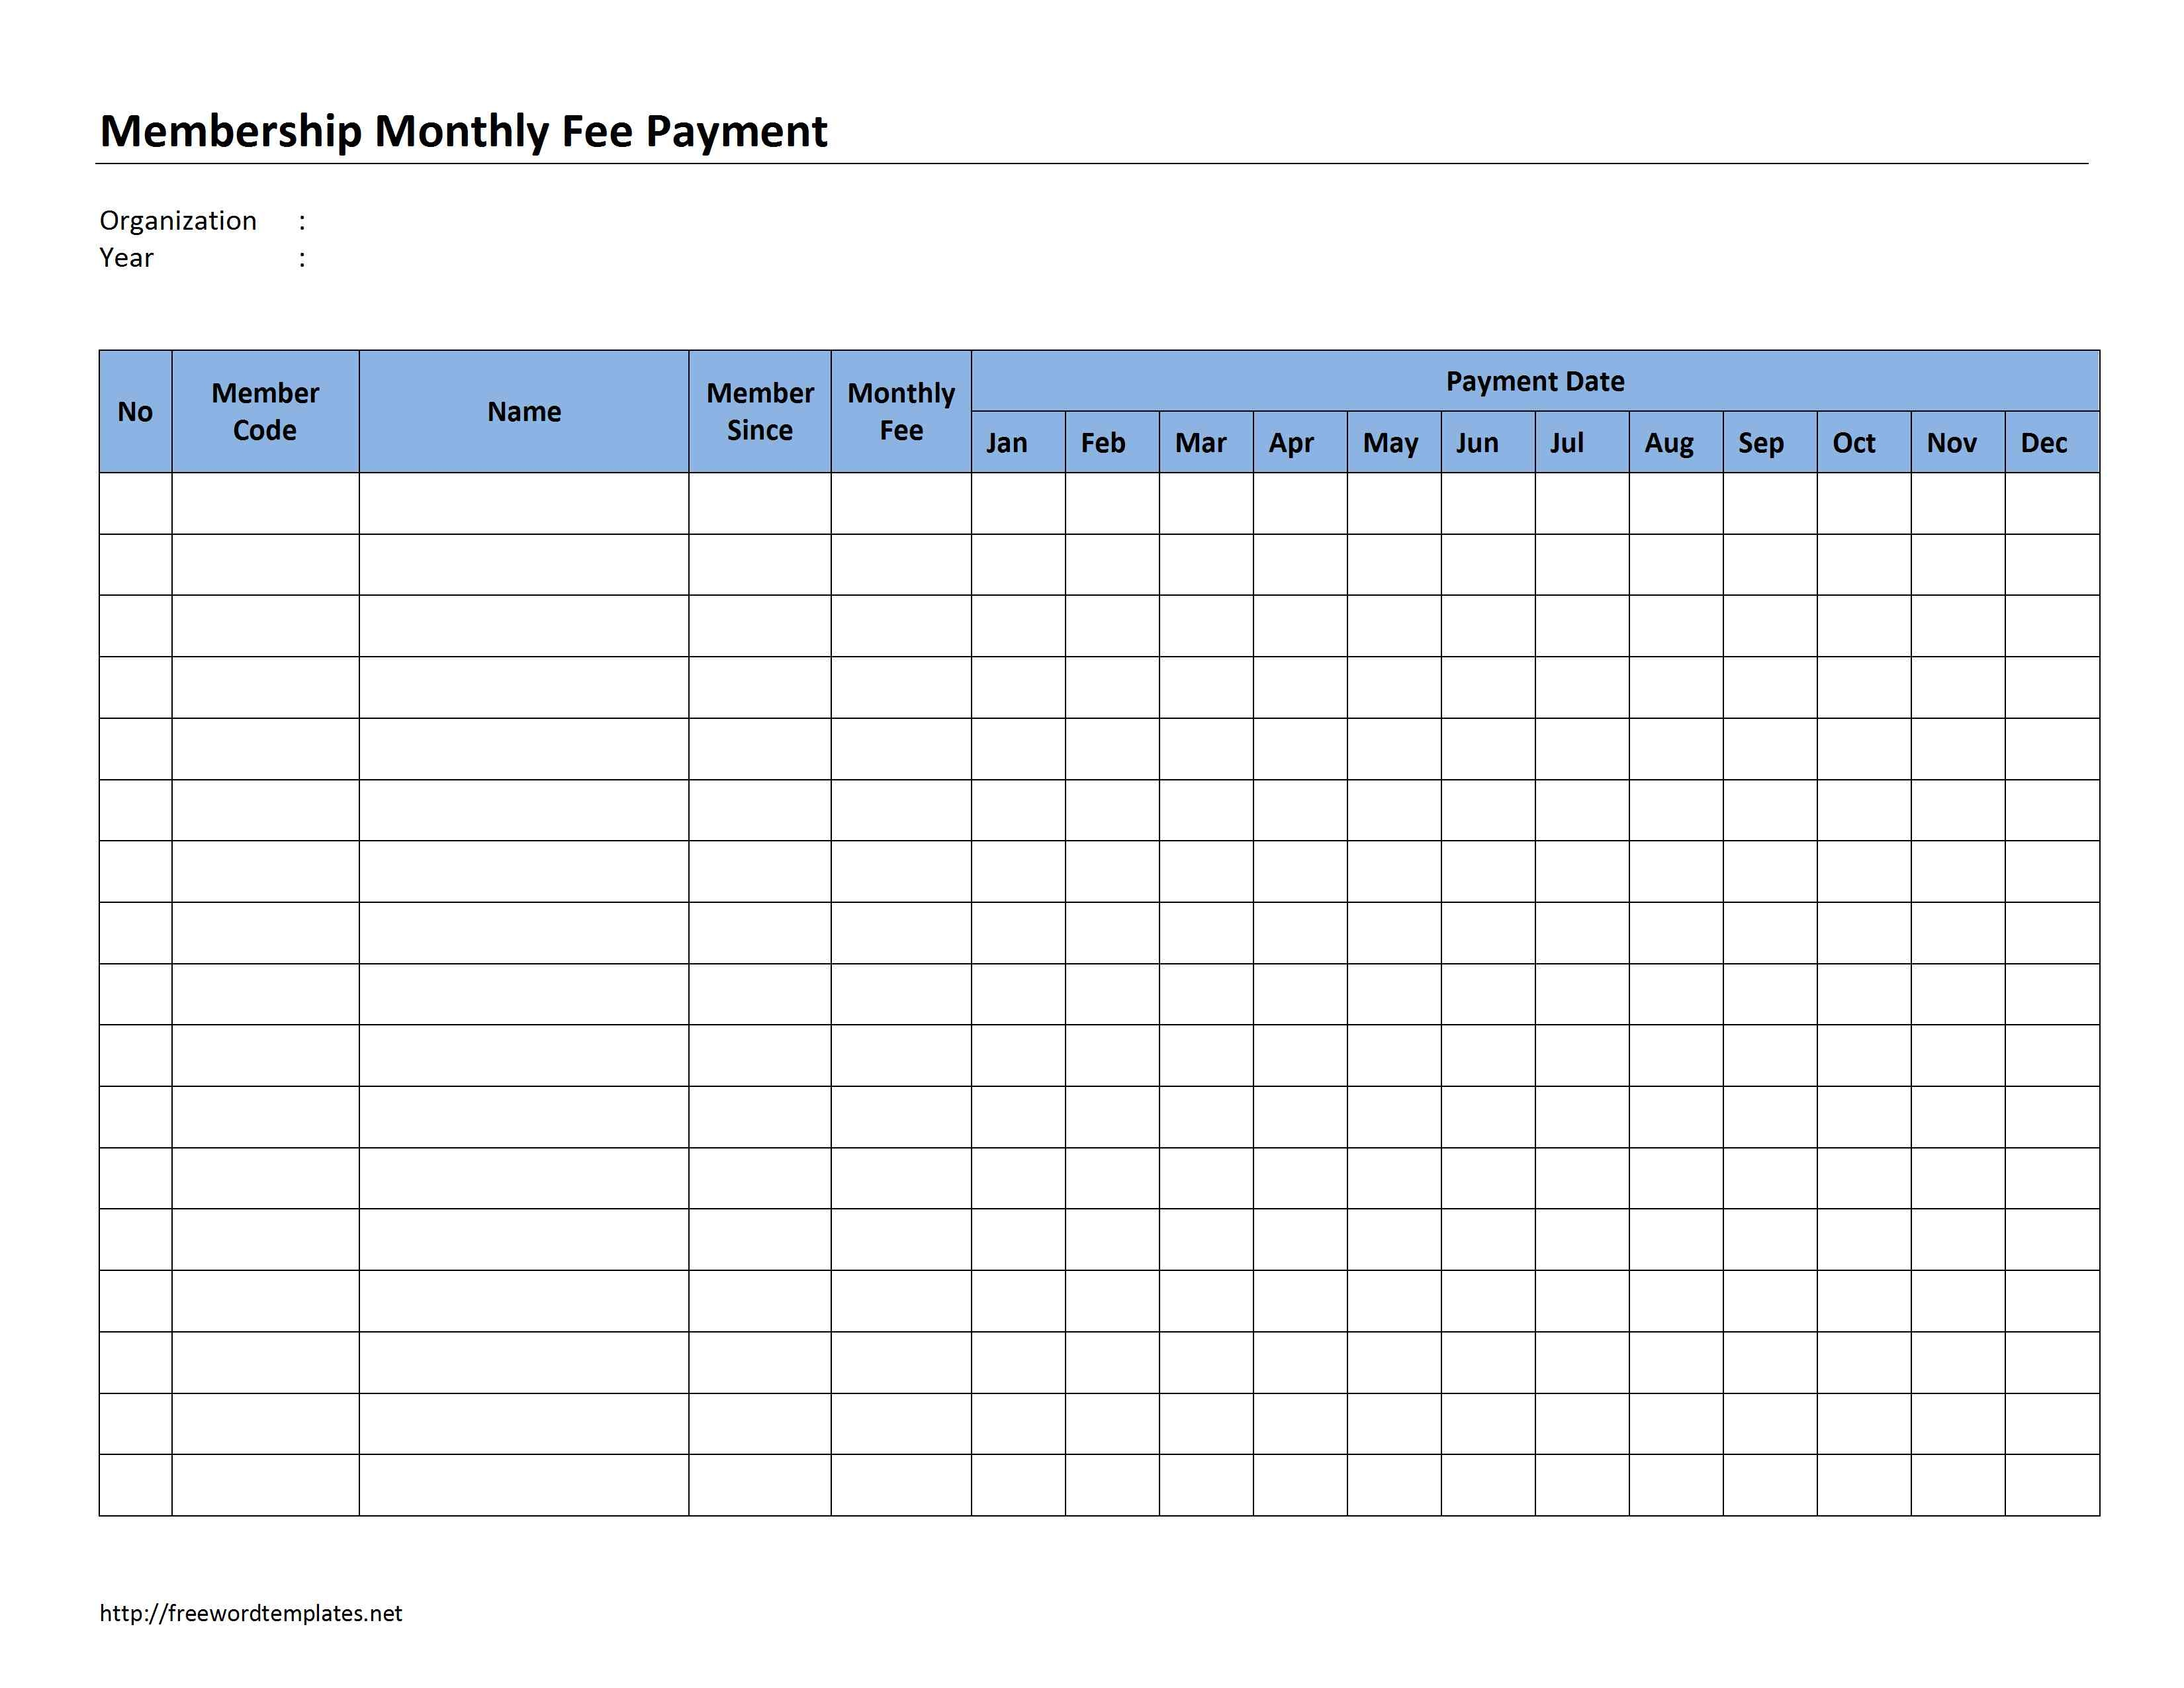 Schedule Template Payment Format Excel Sheet Sample Membership - Free Printable Bill Payment Schedule